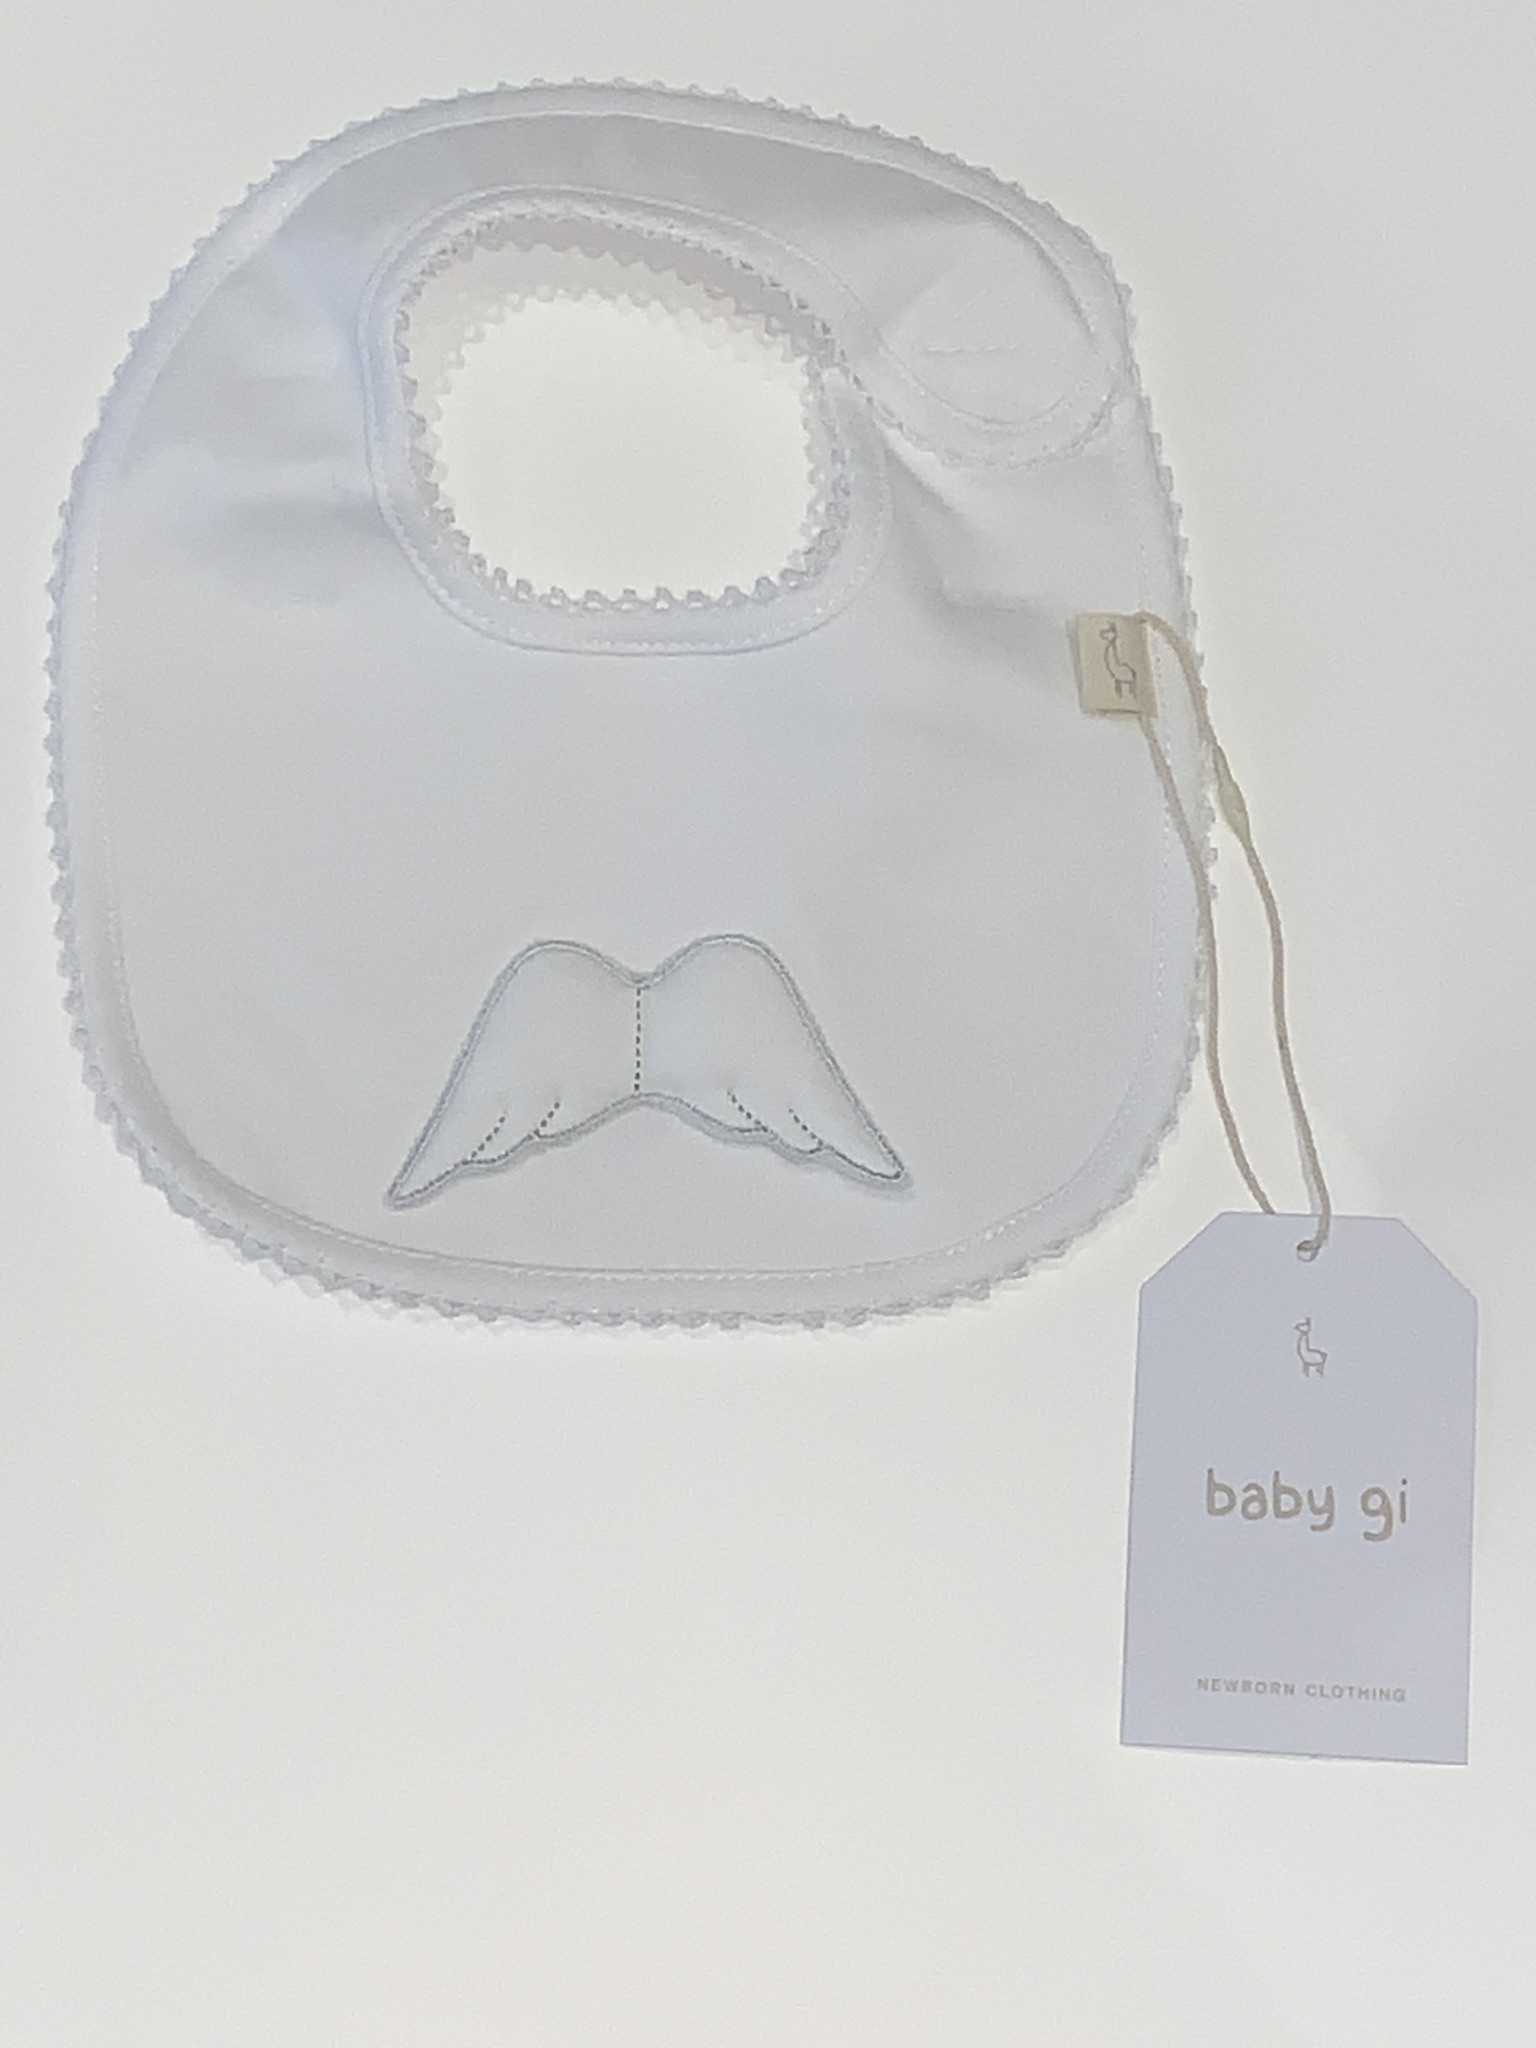 Baby Gi Baby Gi white angel wings bib